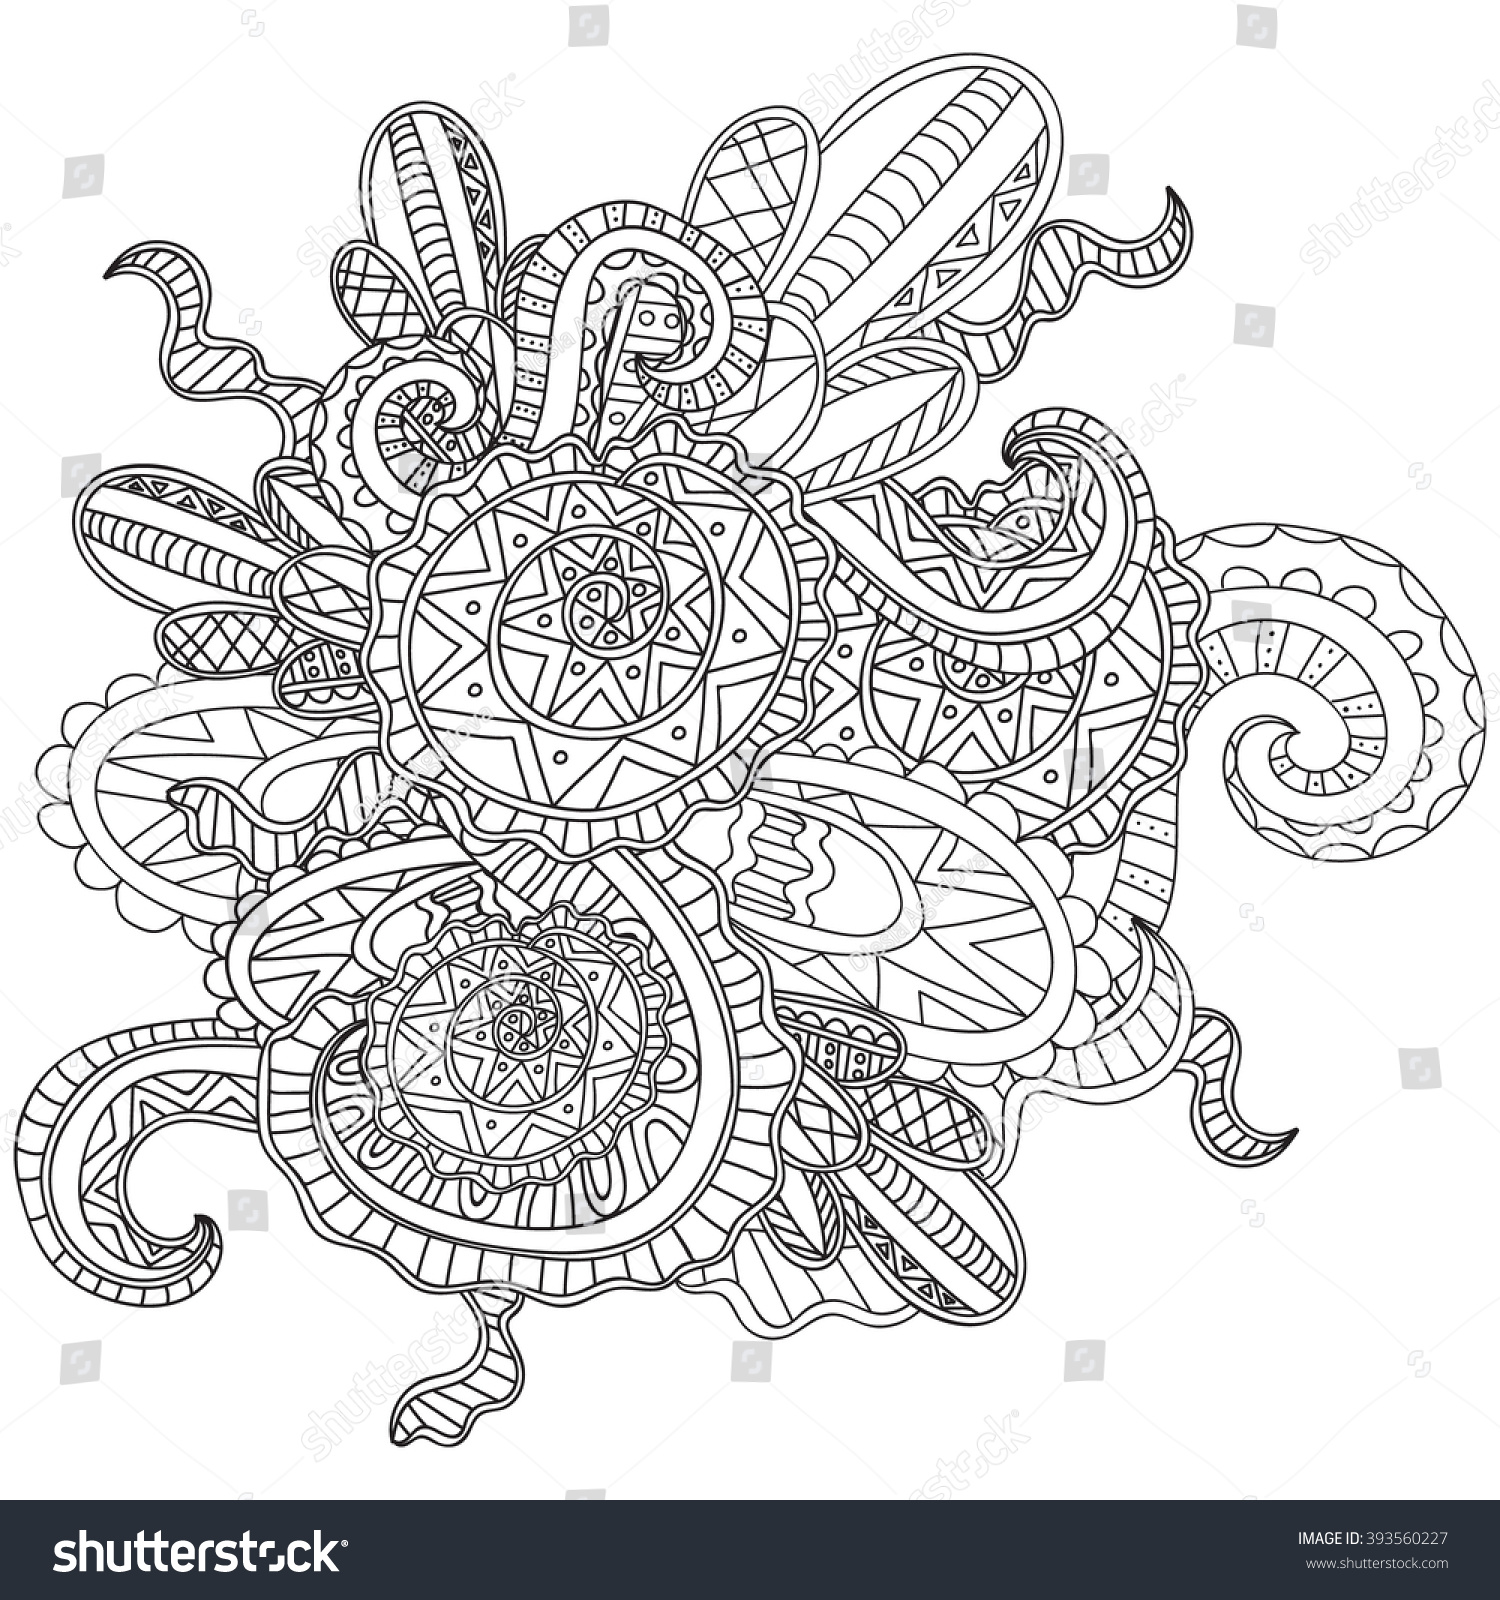 Coloring Pages Adults Book Decorative Hand Stock Vector 393560227